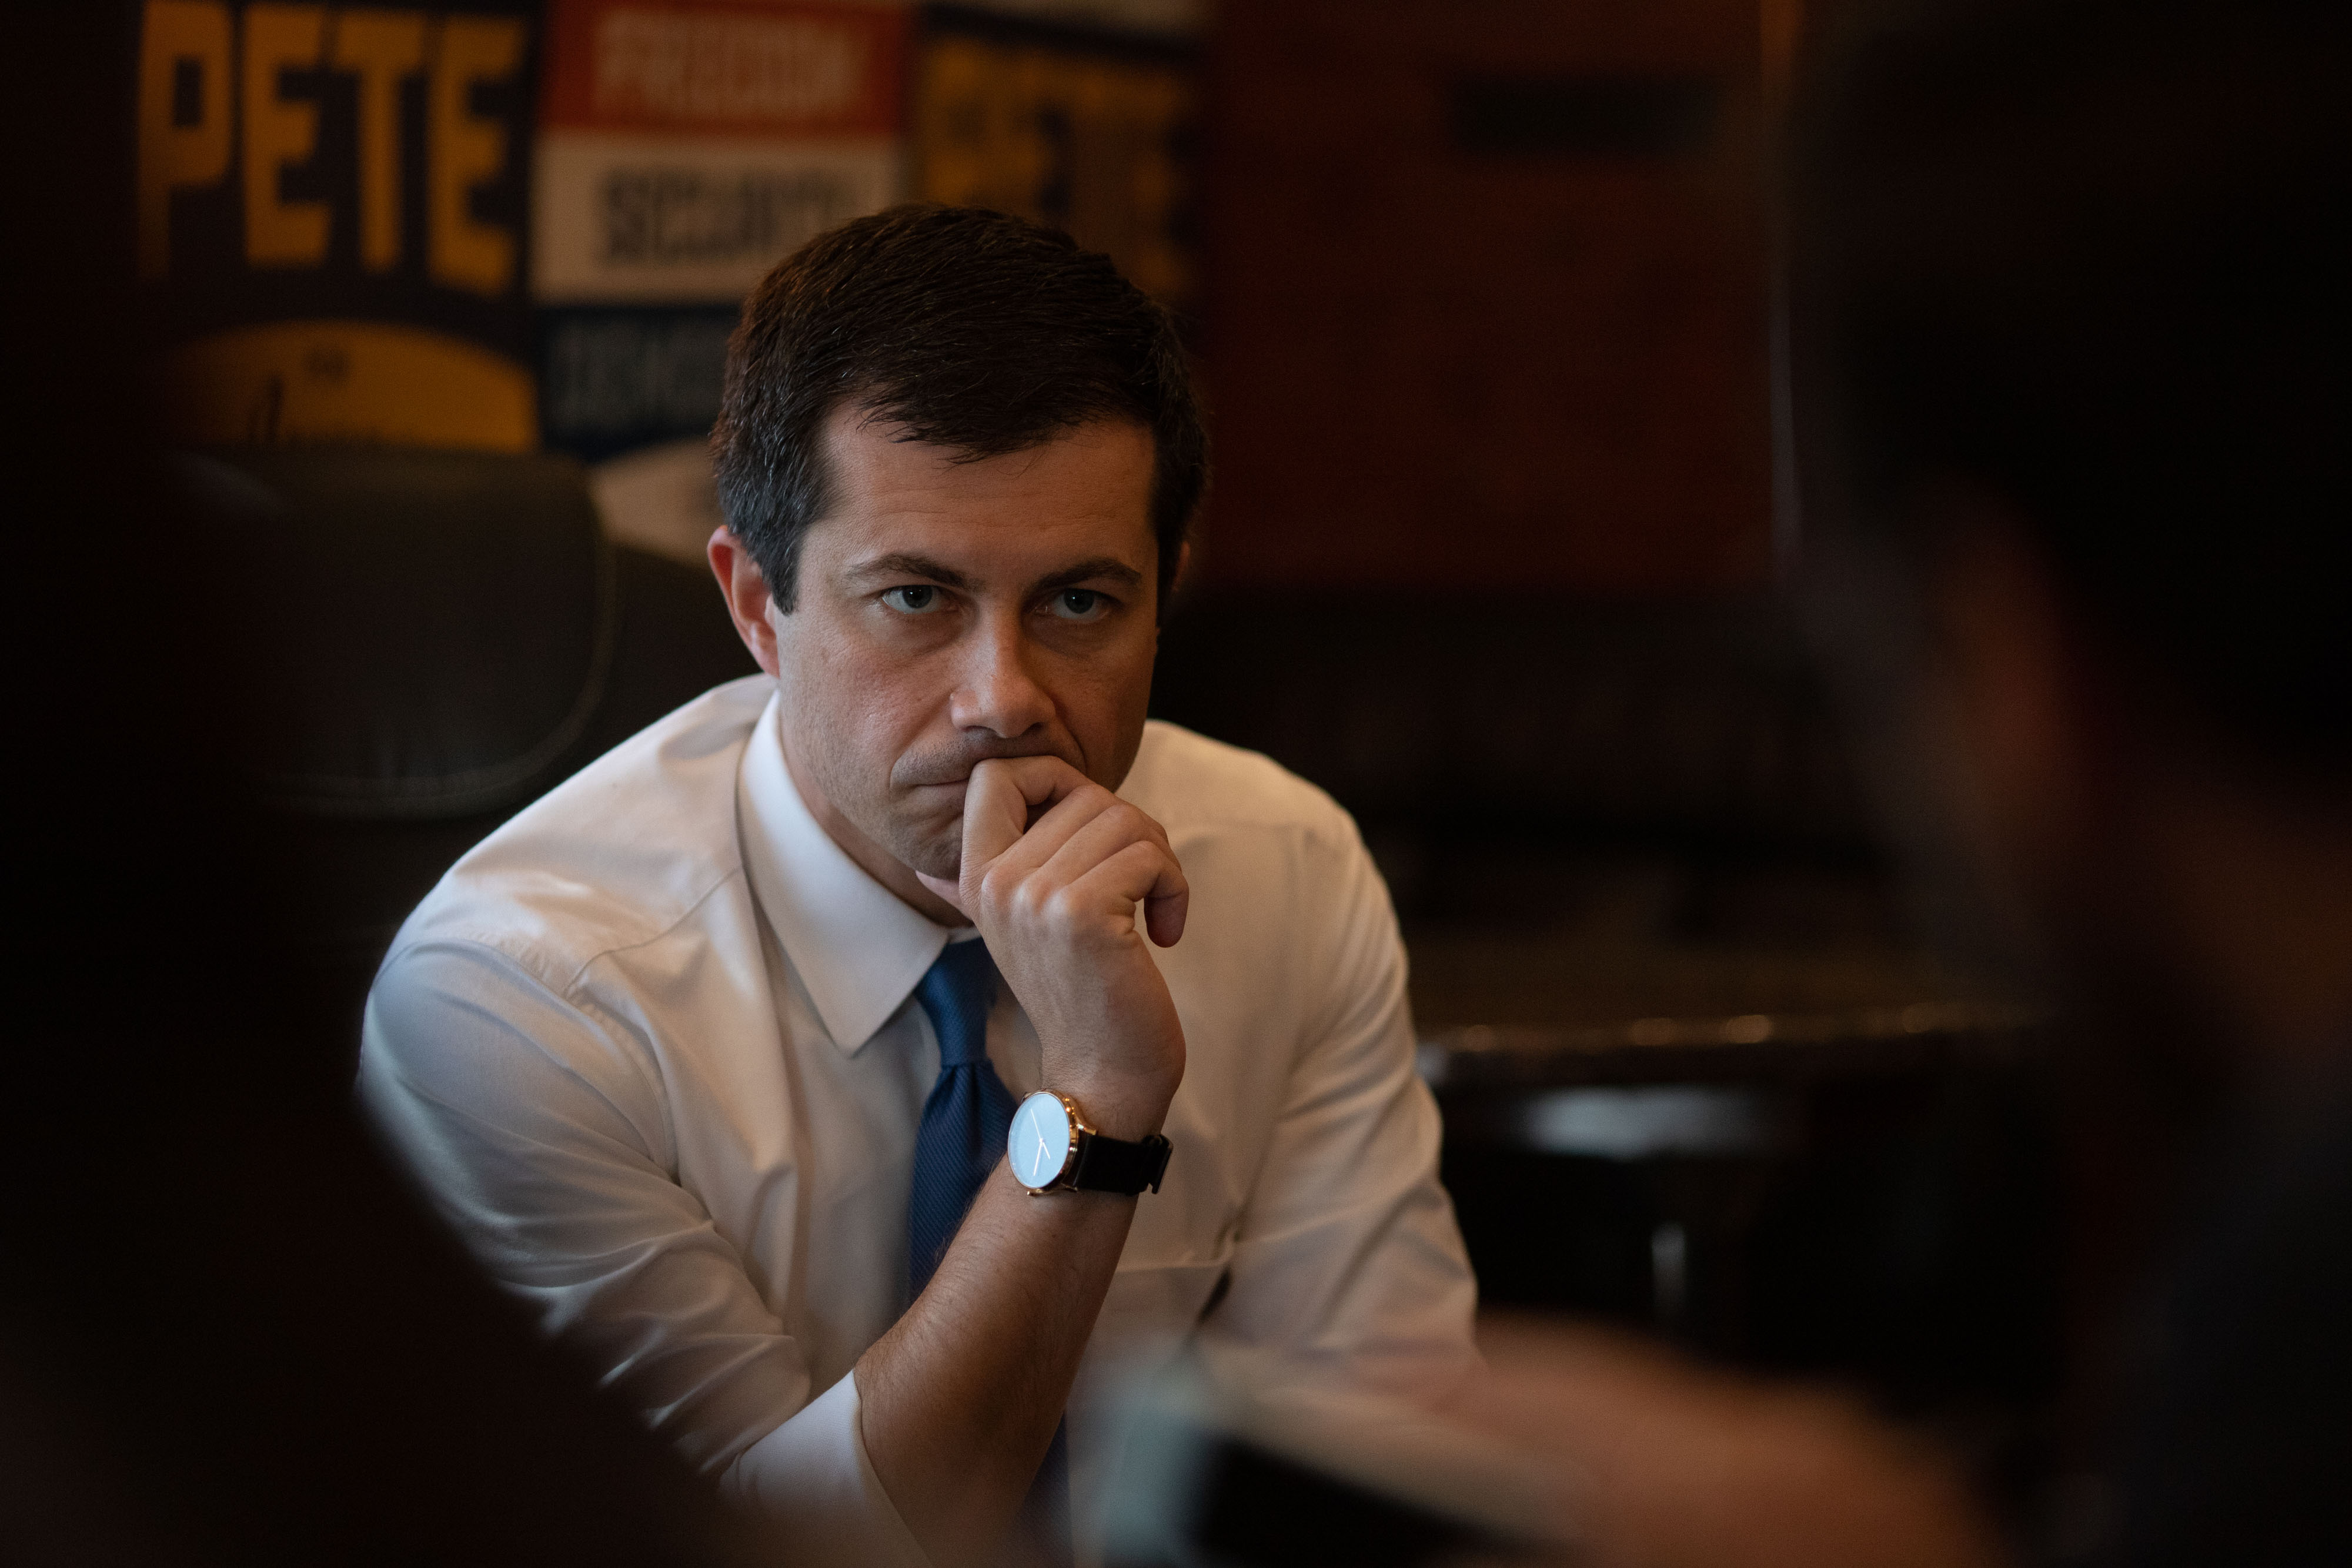 mayor pete buttigieg mayo pete sitting with hand on chin tiktok election 2020 bernie sanders elizabeth warren andrew yang panic at the disco high hopes